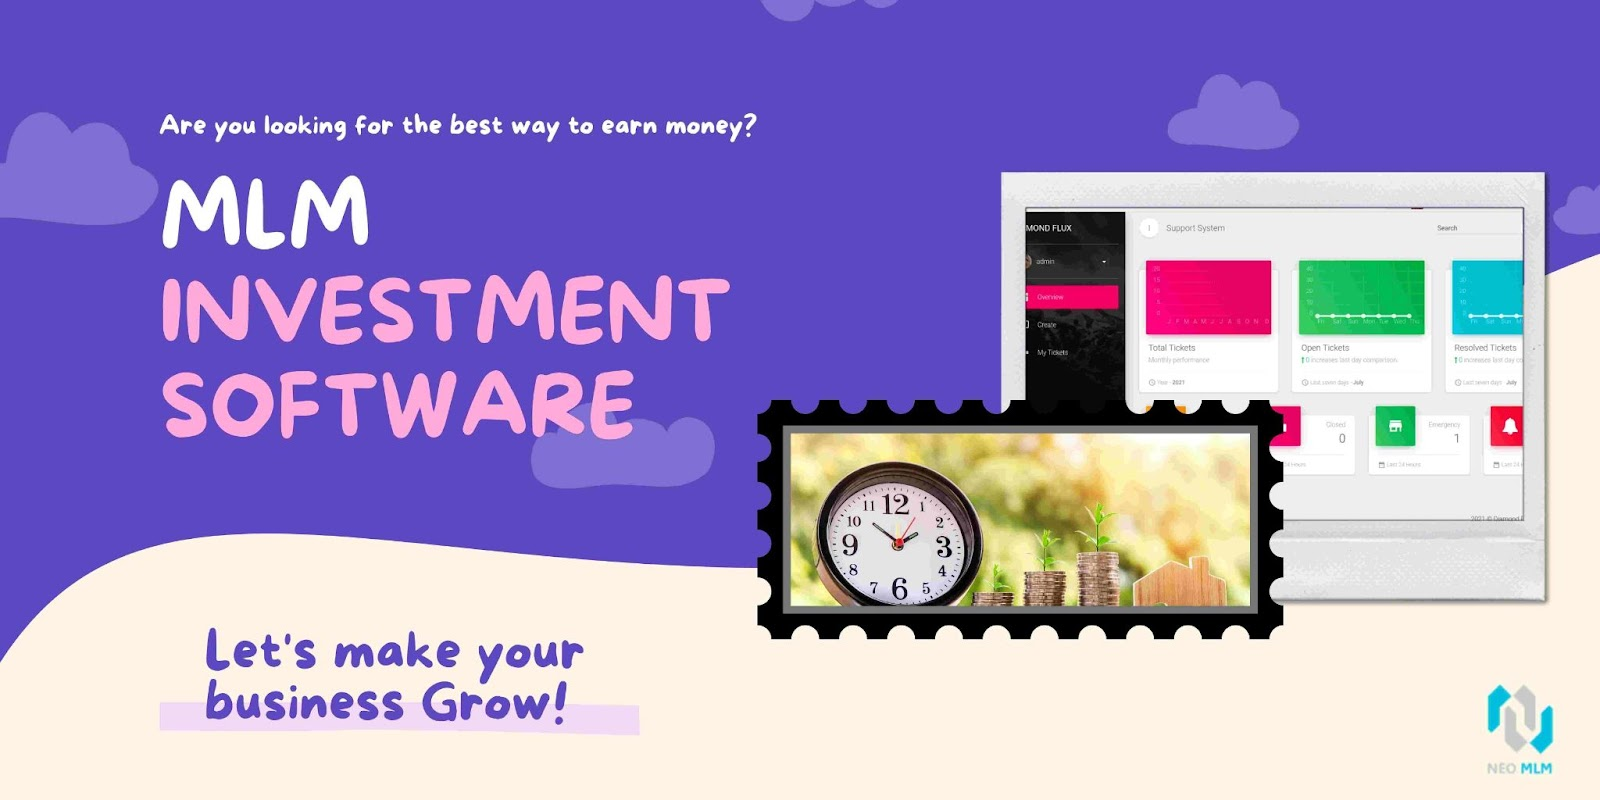 mlm investment software